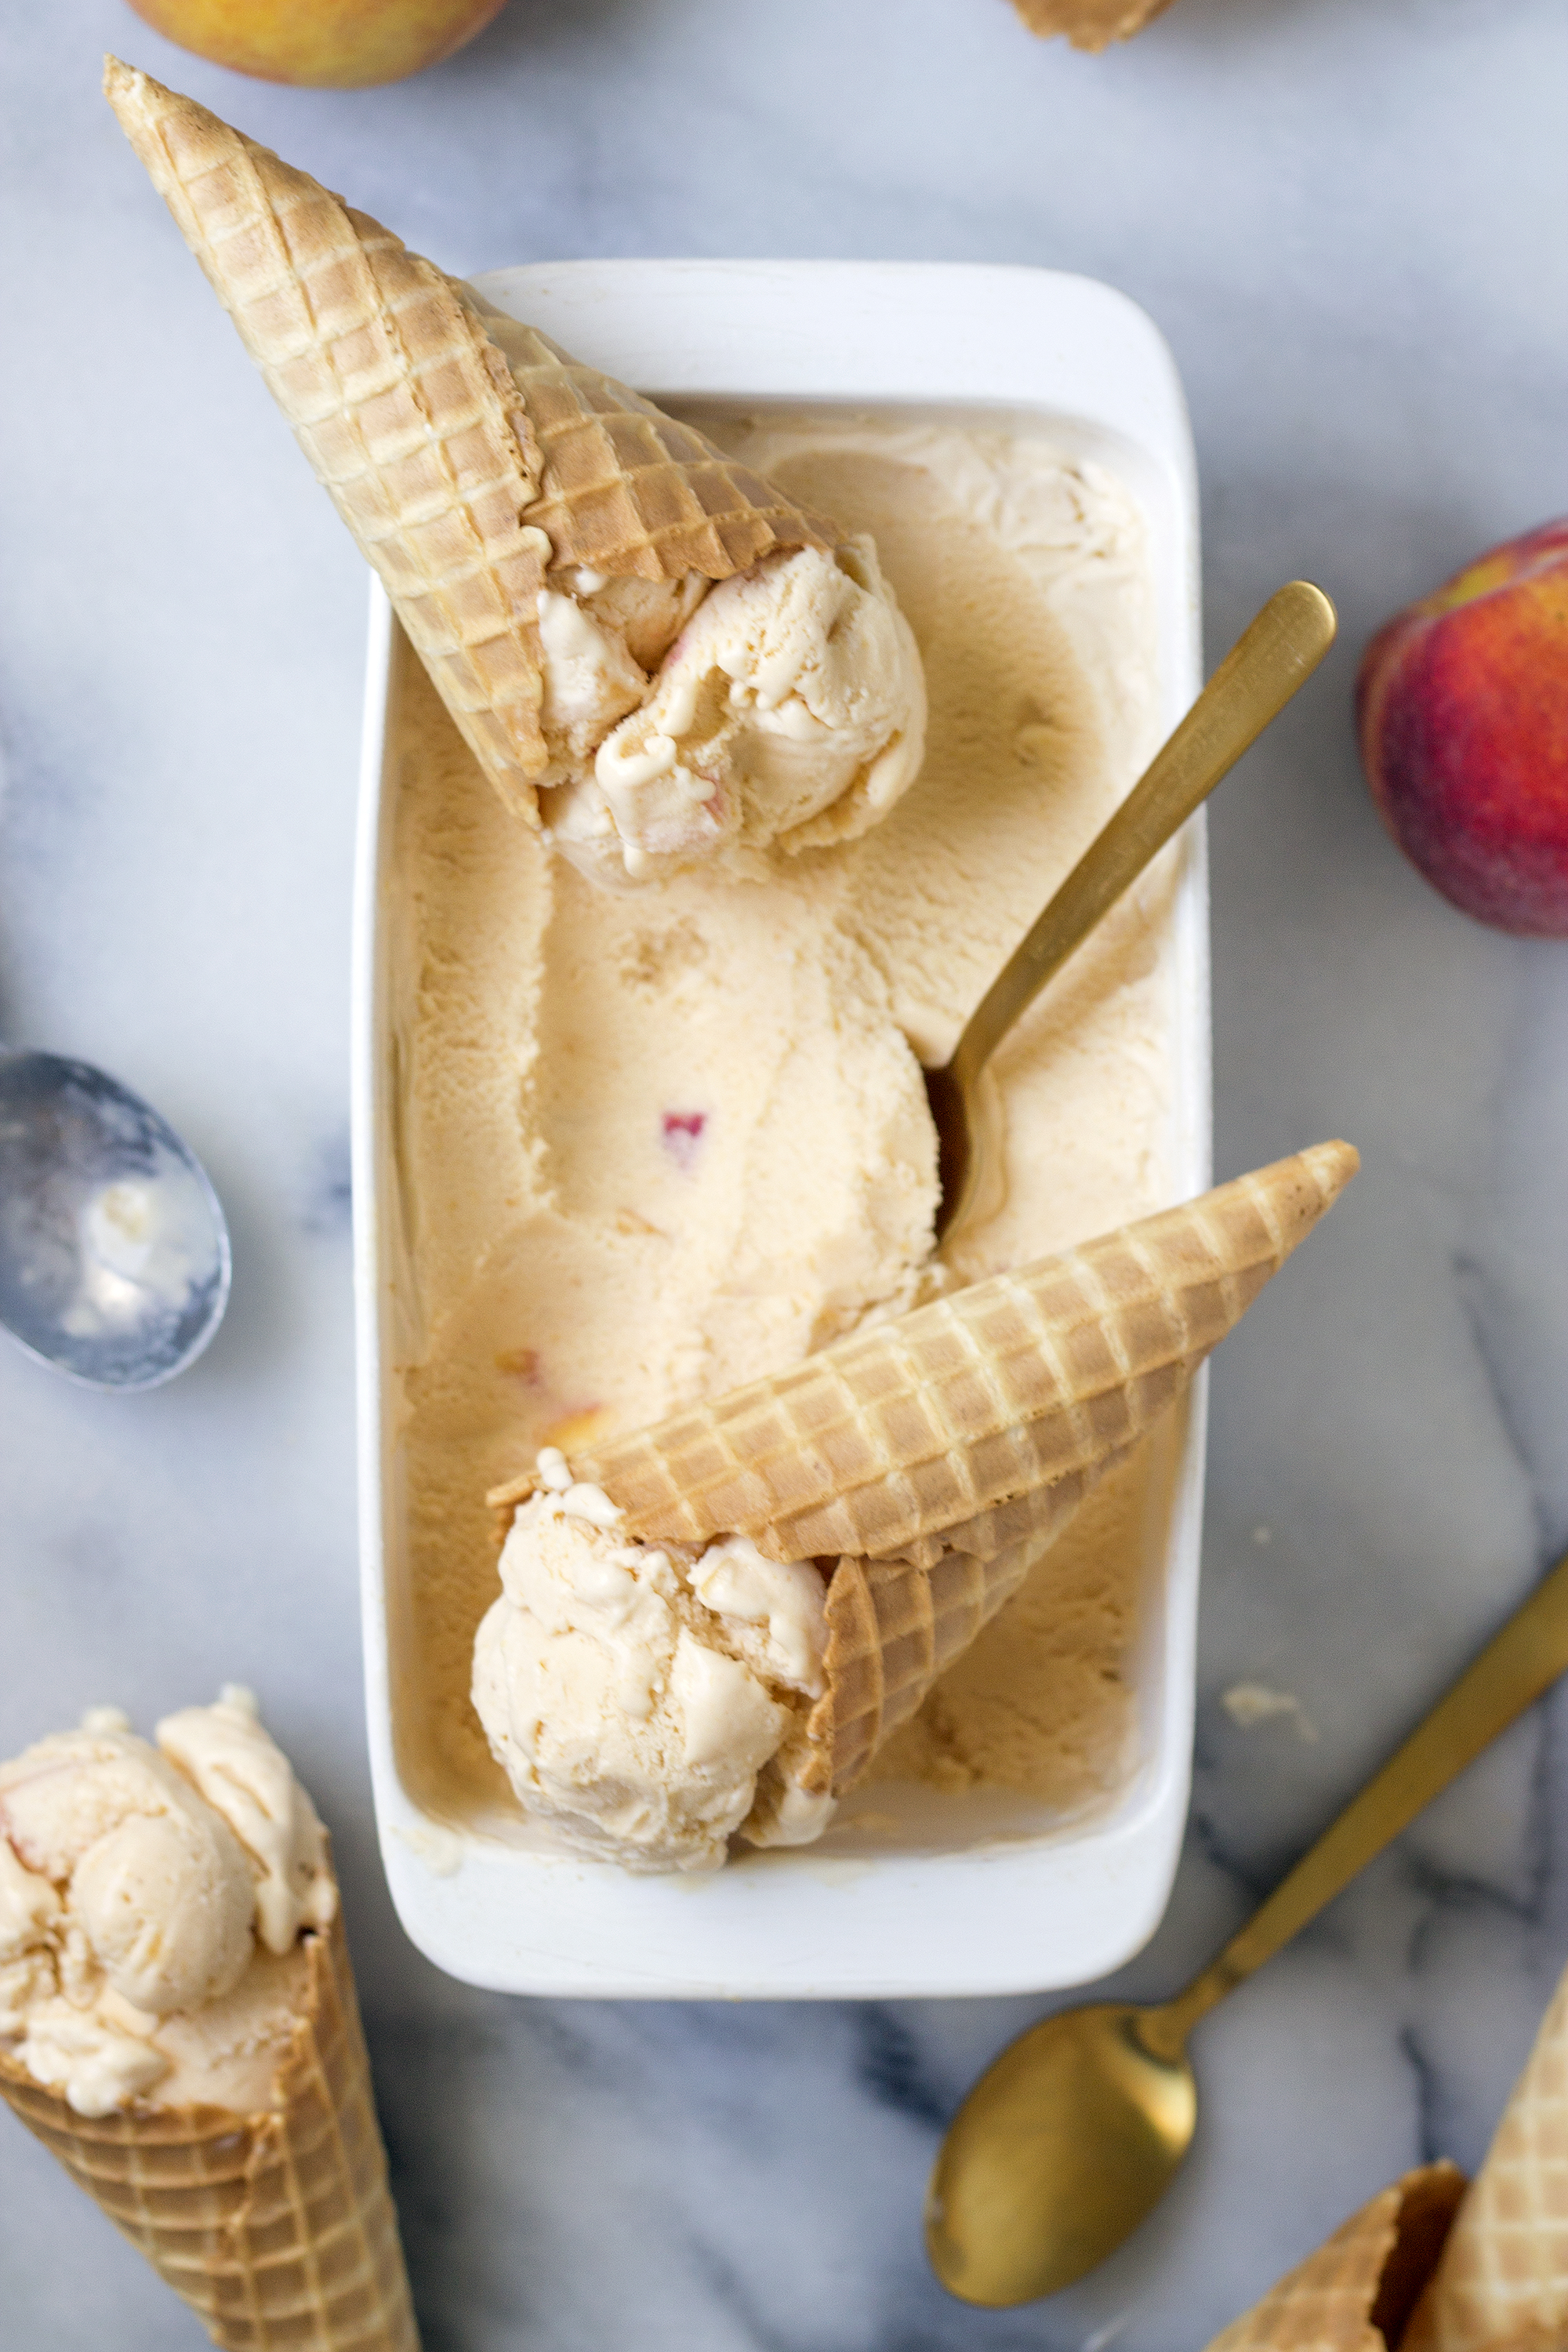 Homemade Peach Ice Cream Recipe. UnusuallyLovely.com